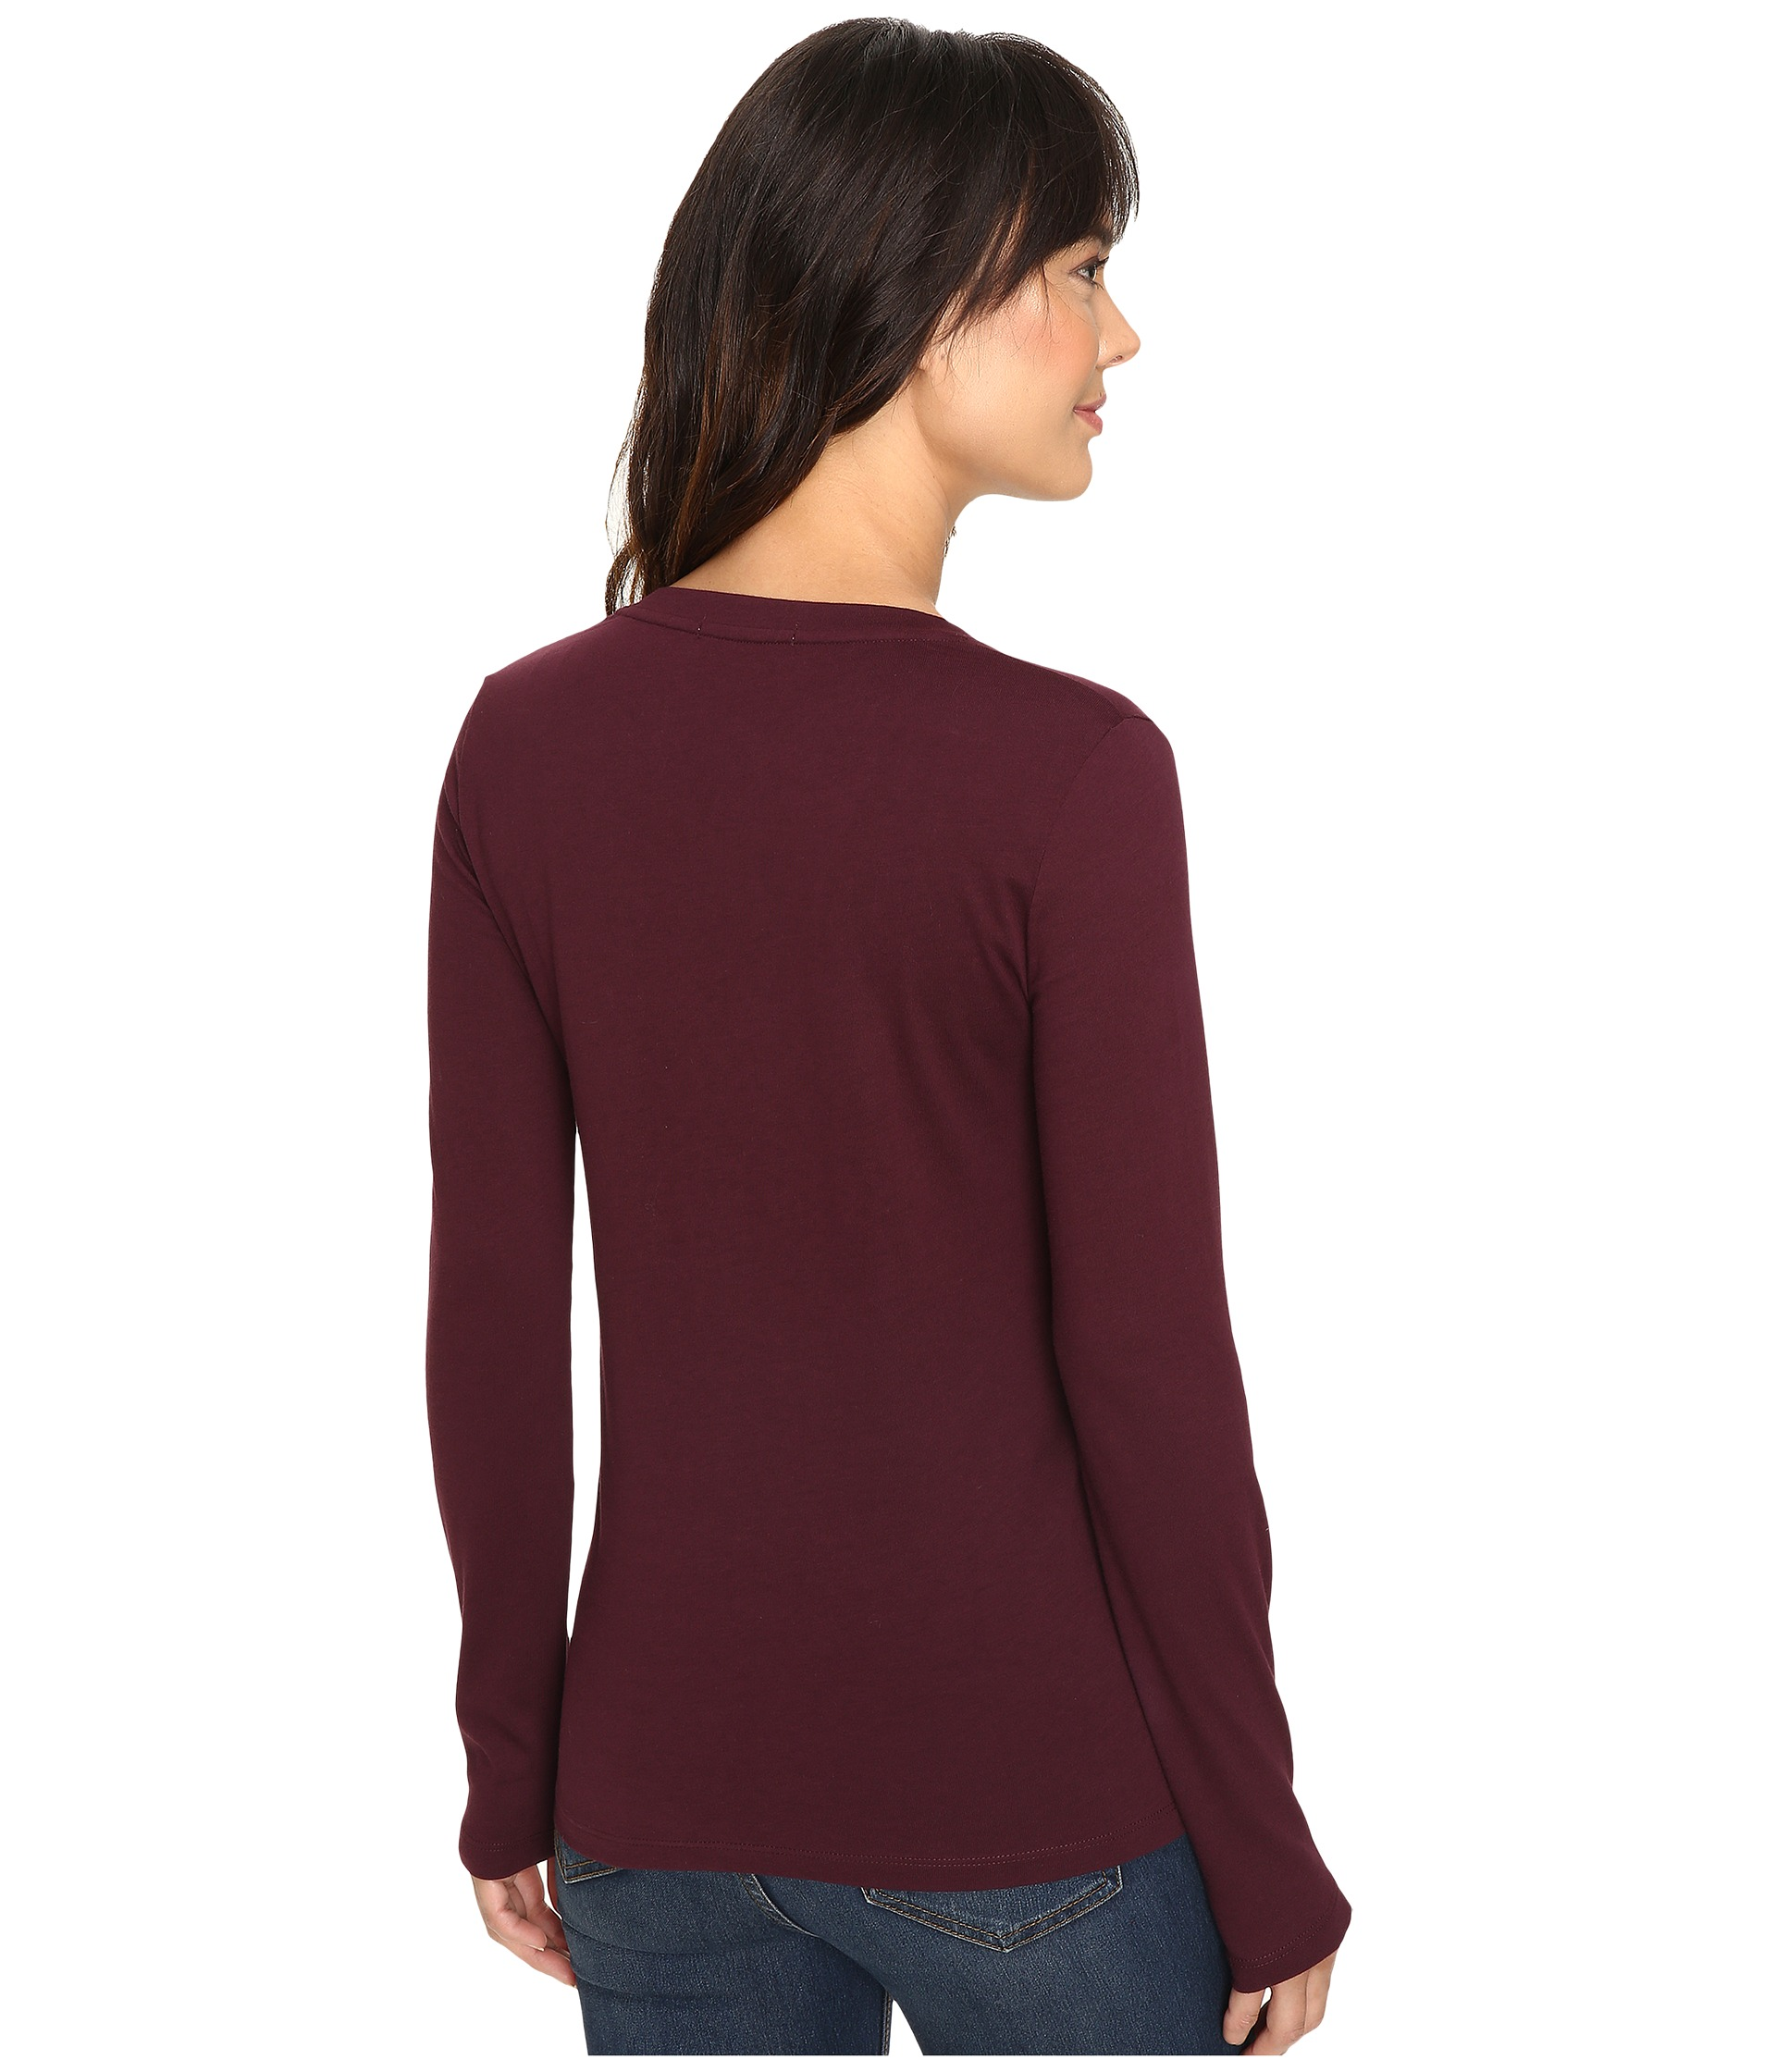 Lacoste long sleeve cotton jersey v neck tee shirt red for Cotton long sleeve v neck t shirts